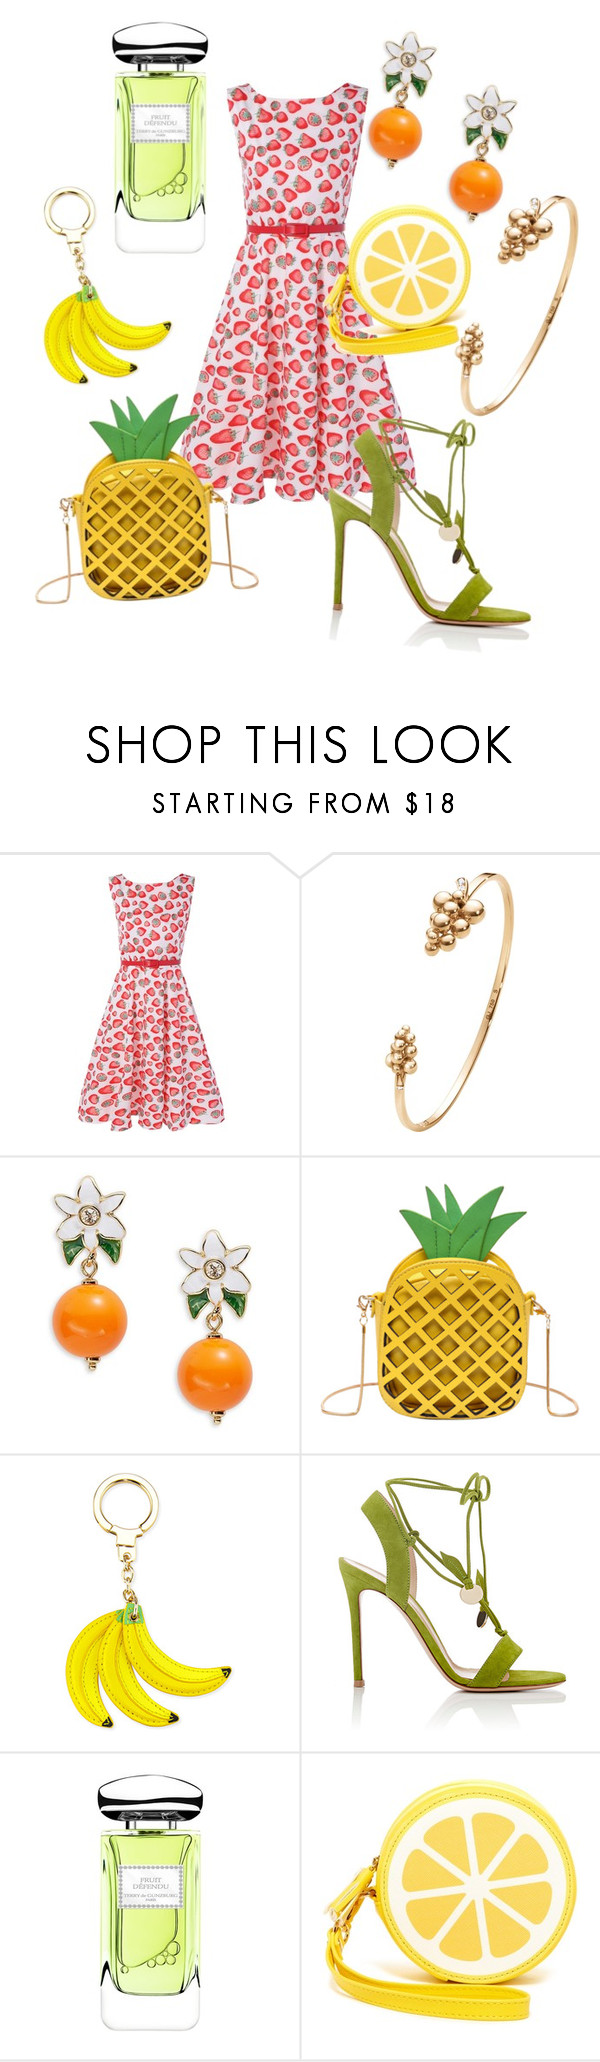 """fruity fashion"" by angelina-vanessa ❤ liked on Polyvore featuring Georg Jensen, Kate Spade, Gianvito Rossi, By Terry and Shiraleah"